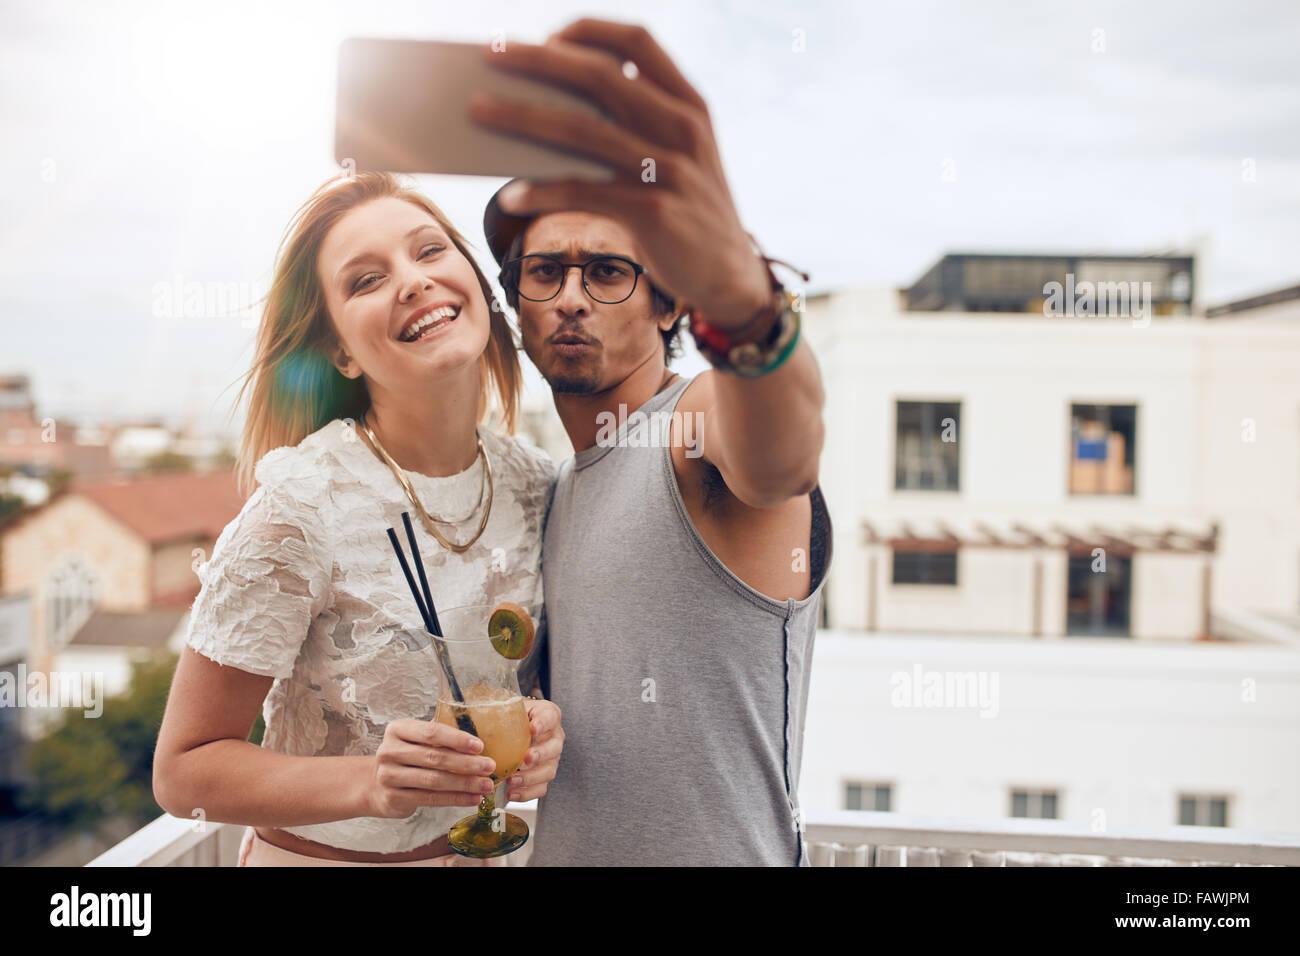 Two young friends taking a selfie on rooftop. Man holding smart phone and taking self portrait with woman holding - Stock Image